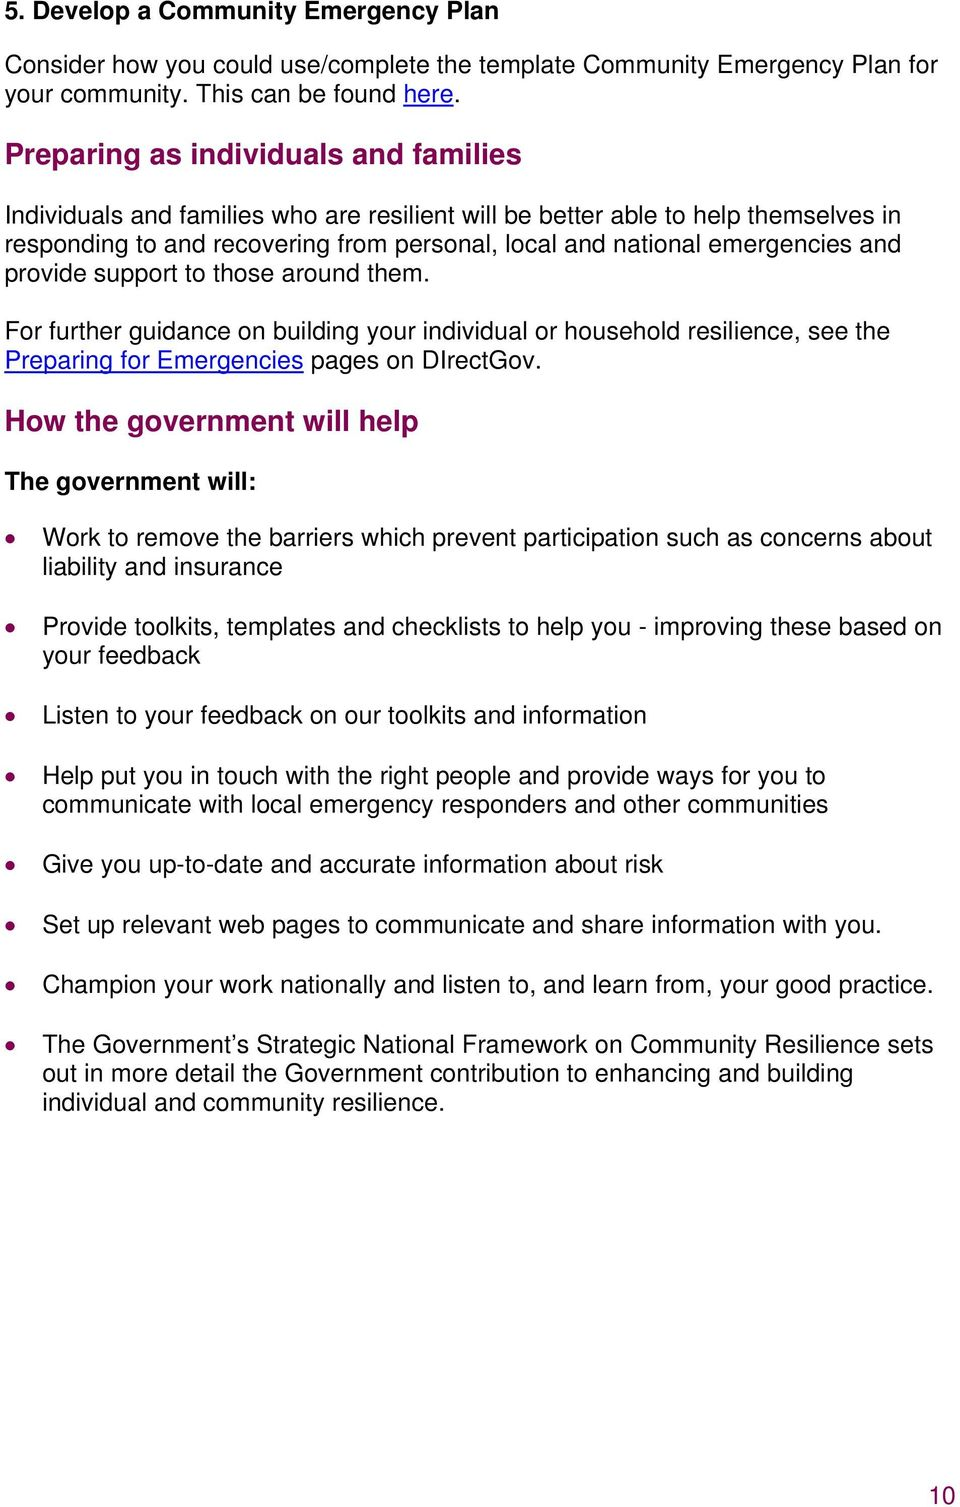 and provide support to those around them. For further guidance on building your individual or household resilience, see the Preparing for Emergencies pages on DIrectGov.